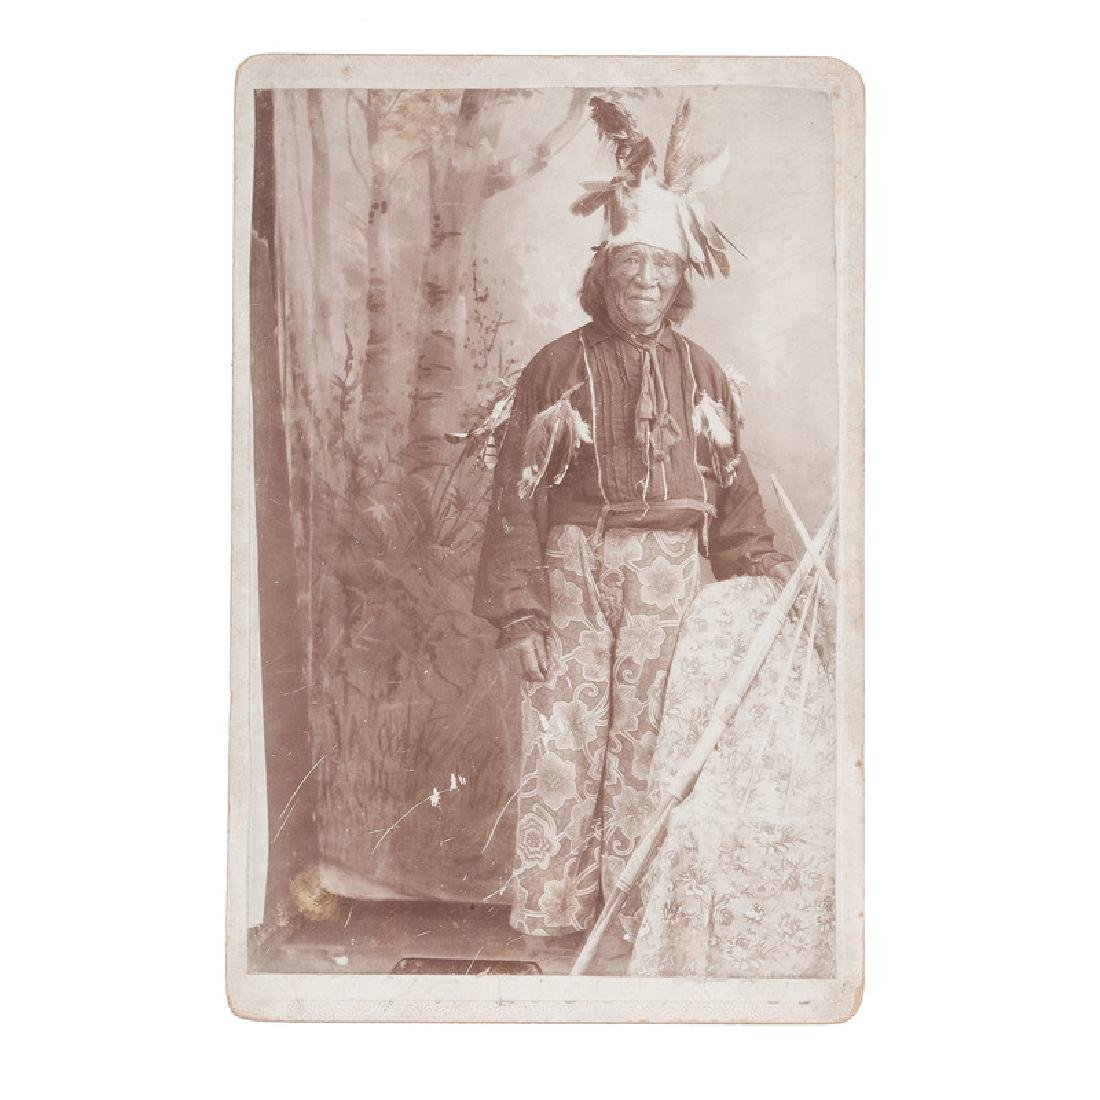 Cabinet Card Supposedly Featuring the Father of Modoc